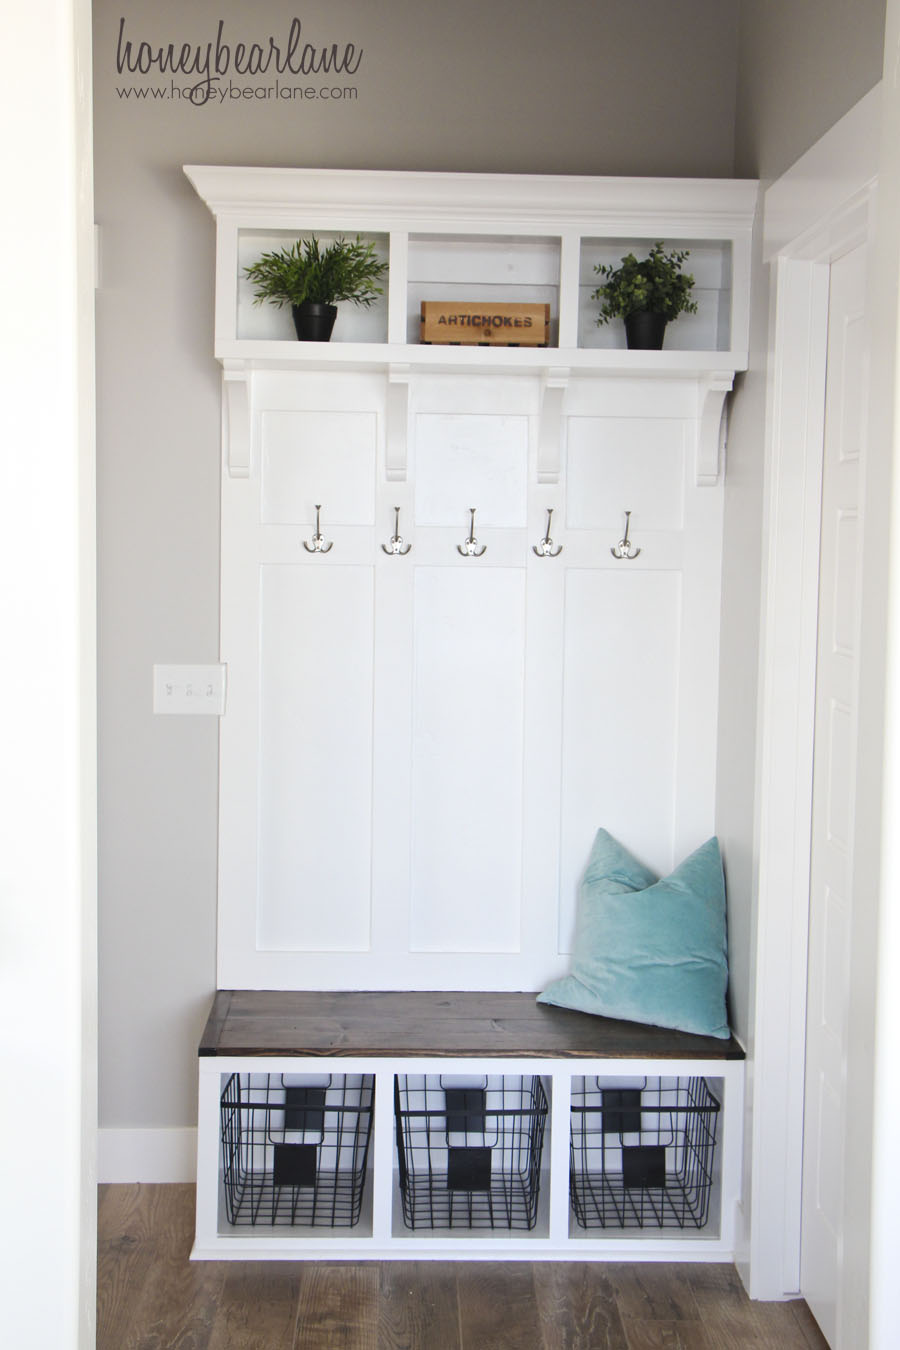 diy mudroom bench part 2 honeybear lane. Black Bedroom Furniture Sets. Home Design Ideas